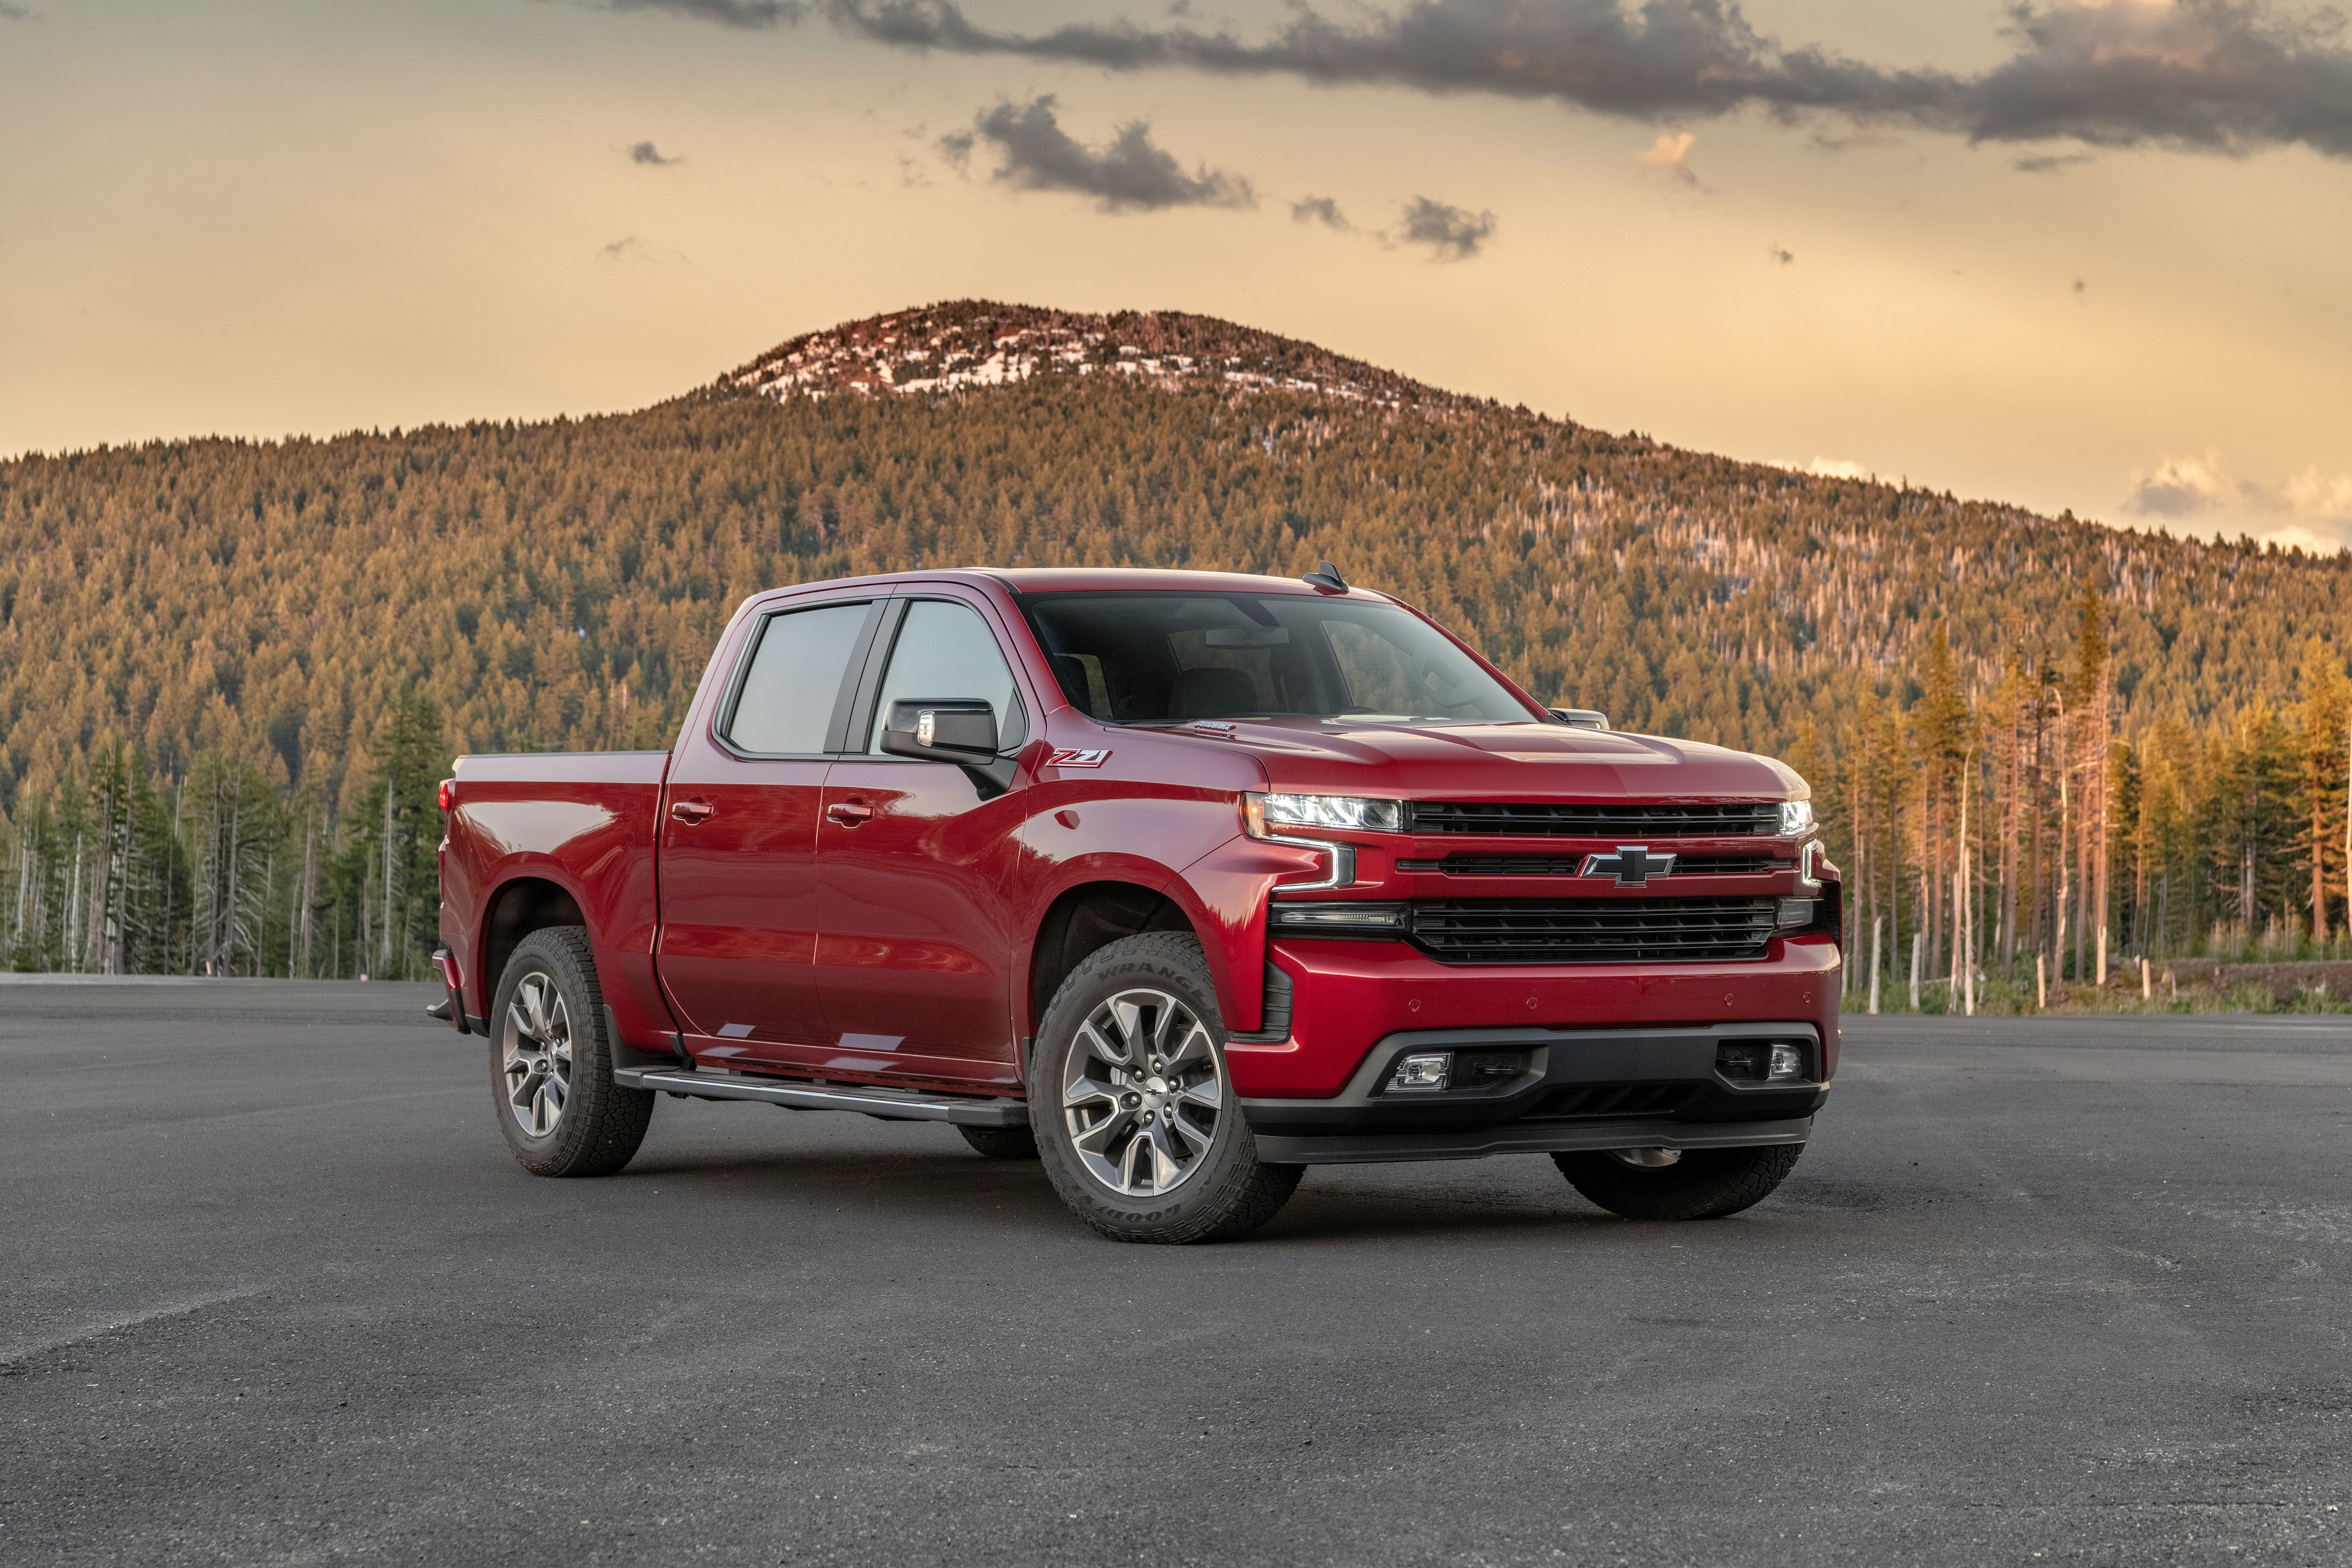 2020 Chevrolet Silverado Spy Shoot